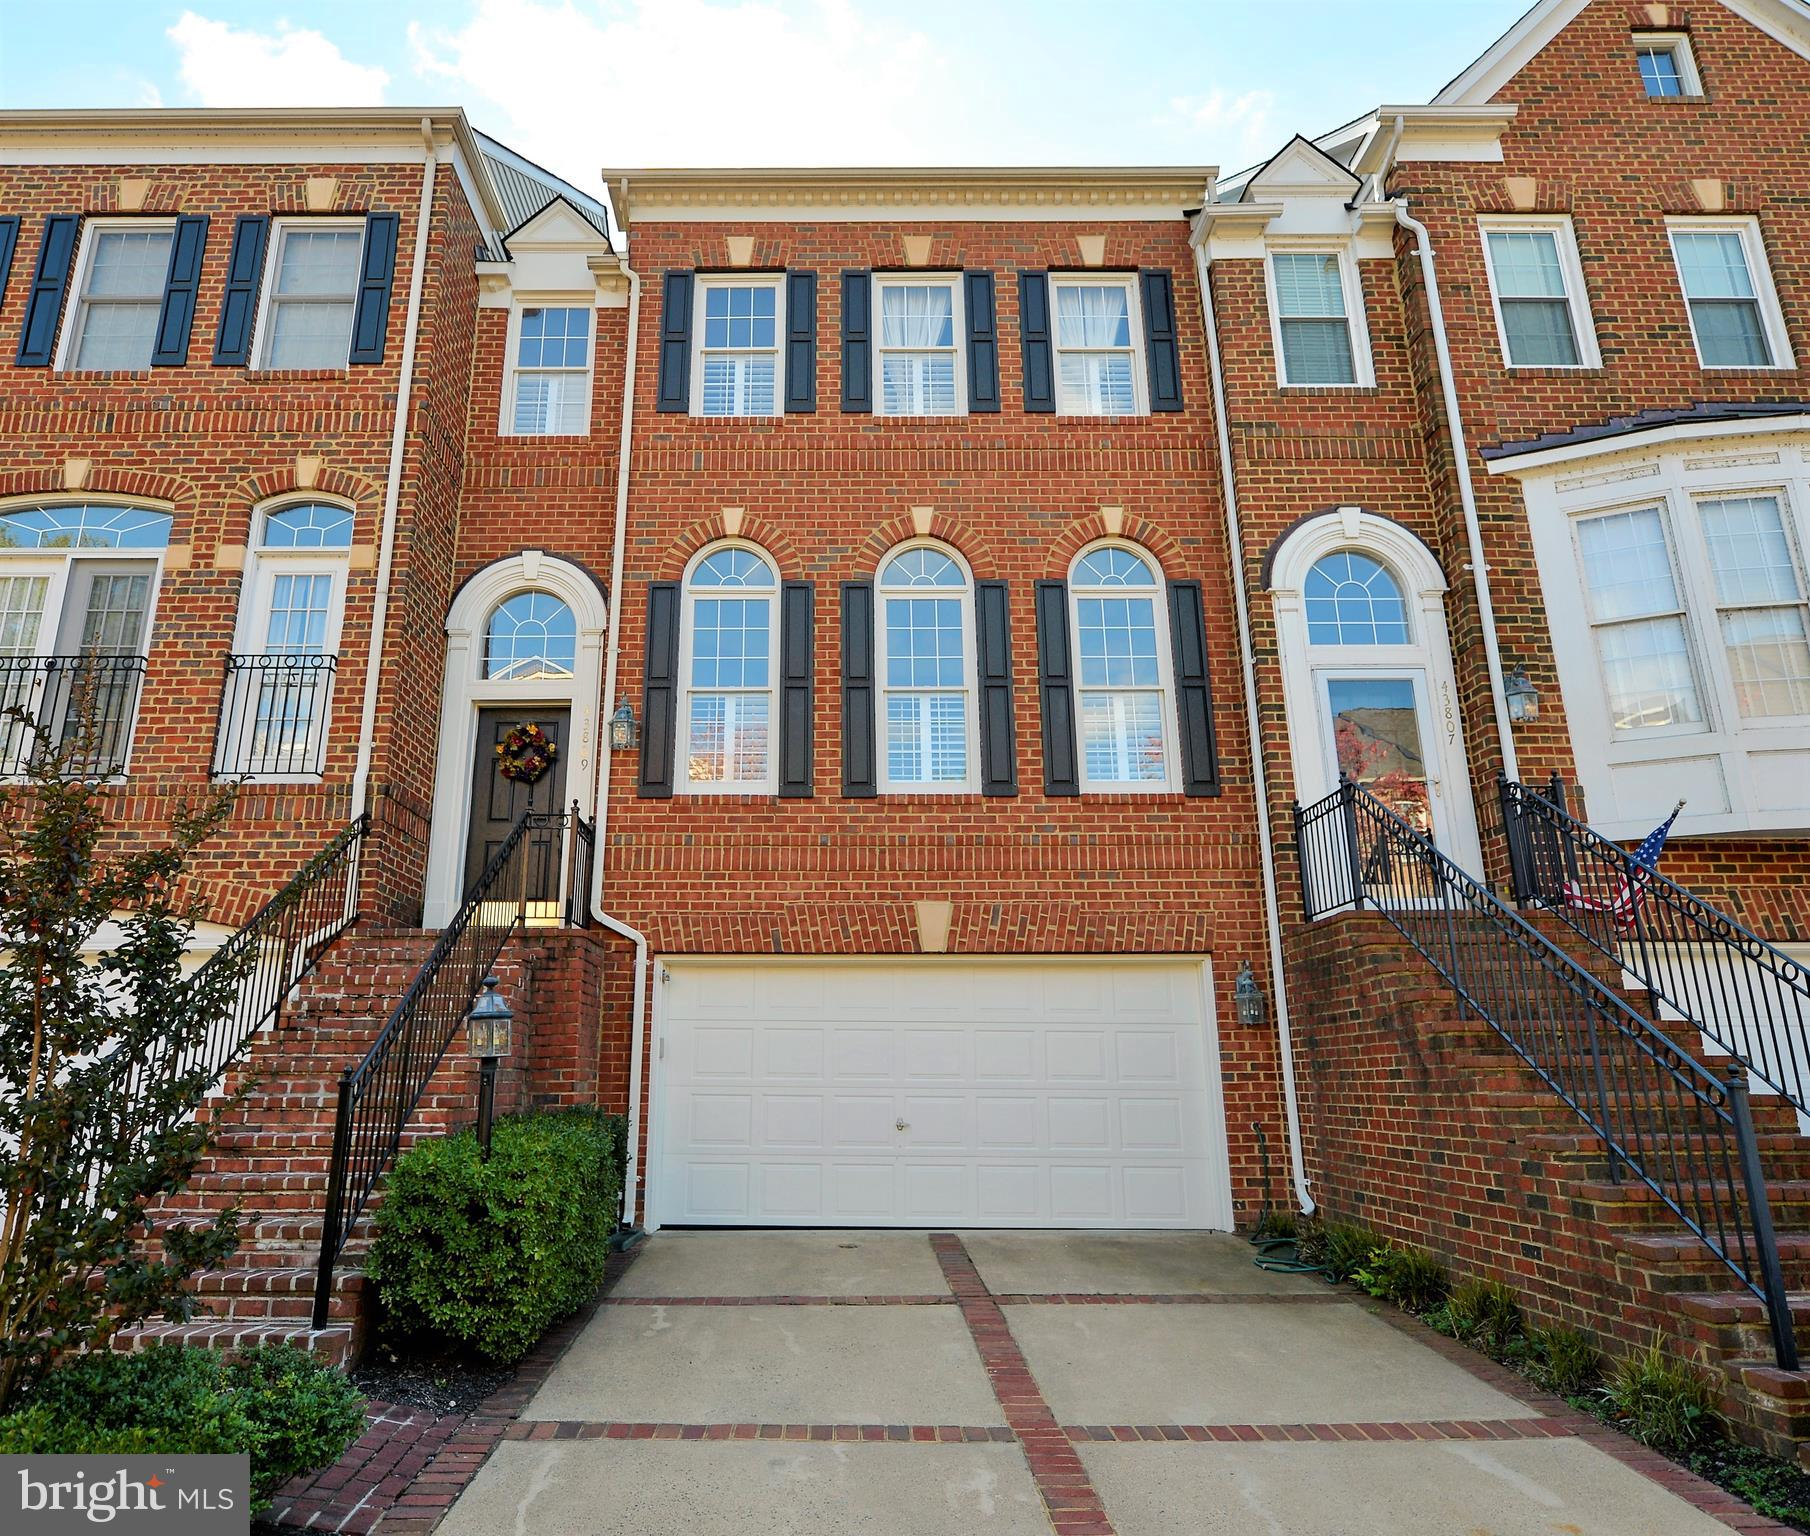 Gorgeous Town home on 4 finished levels in the River Creek Community!  Gleaming Hardwood floors, gas